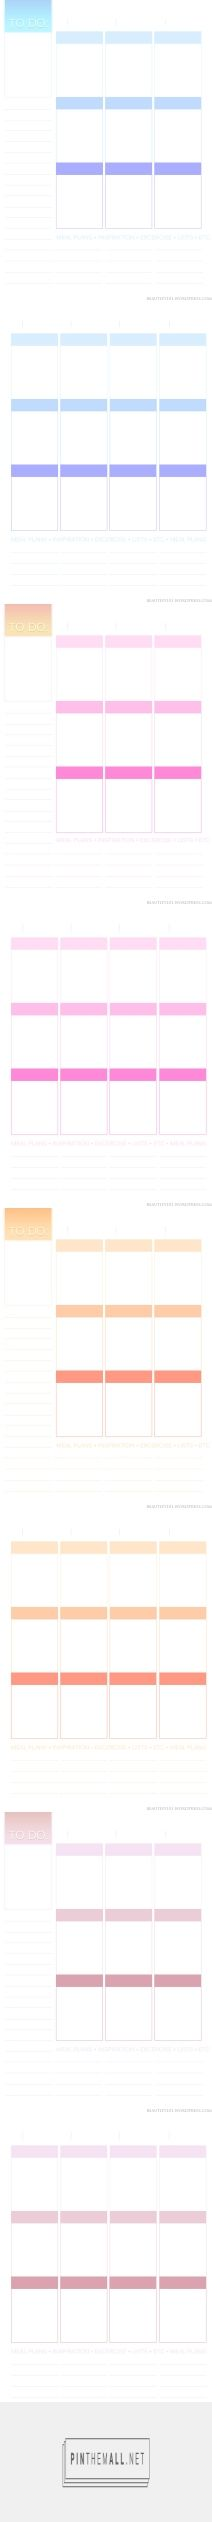 Planner101: Free printable page layout (Erin Condren inspired) | Beautify 101 - created on 2015-09-30 00:34:38